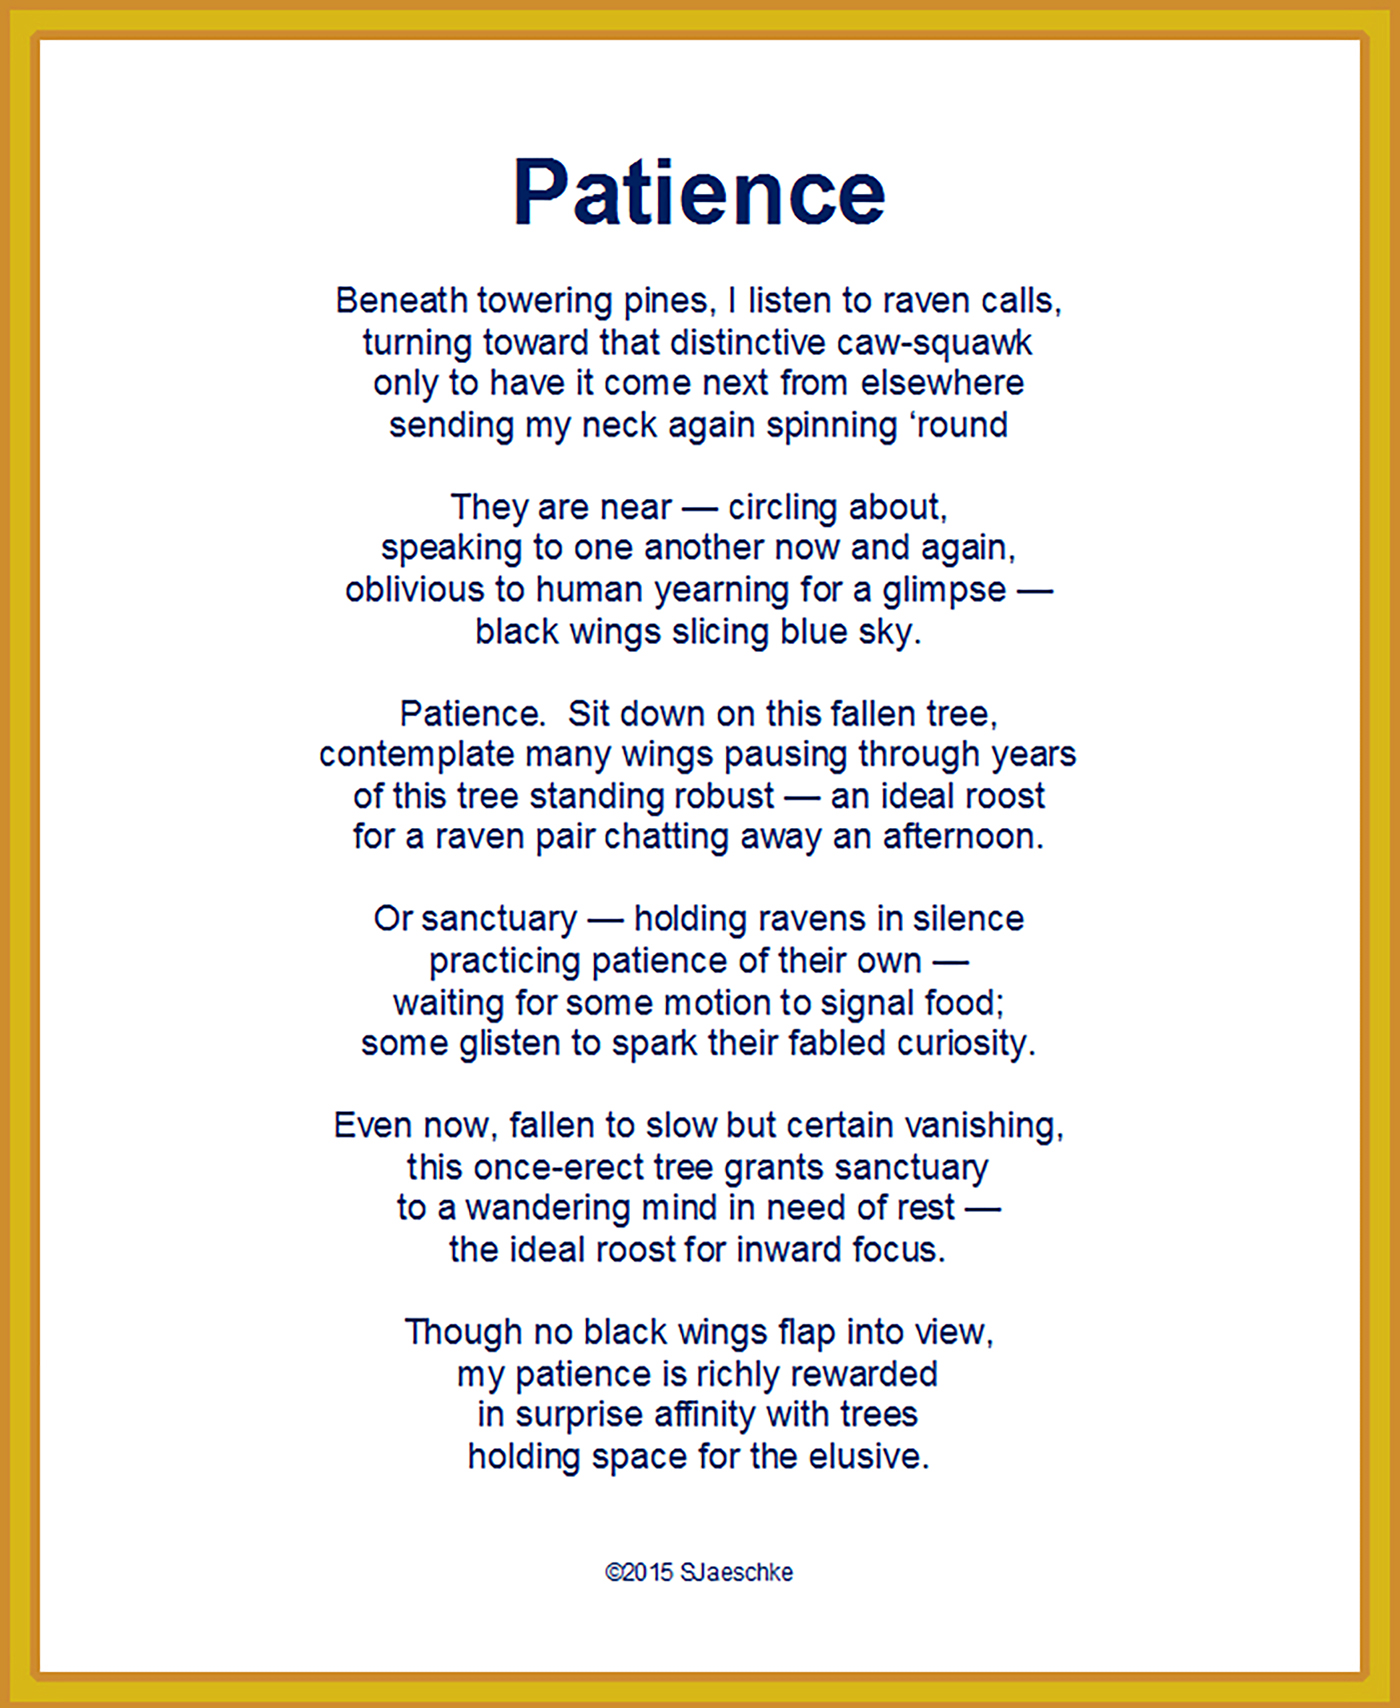 Post_2015-08-17_Poem_Patience